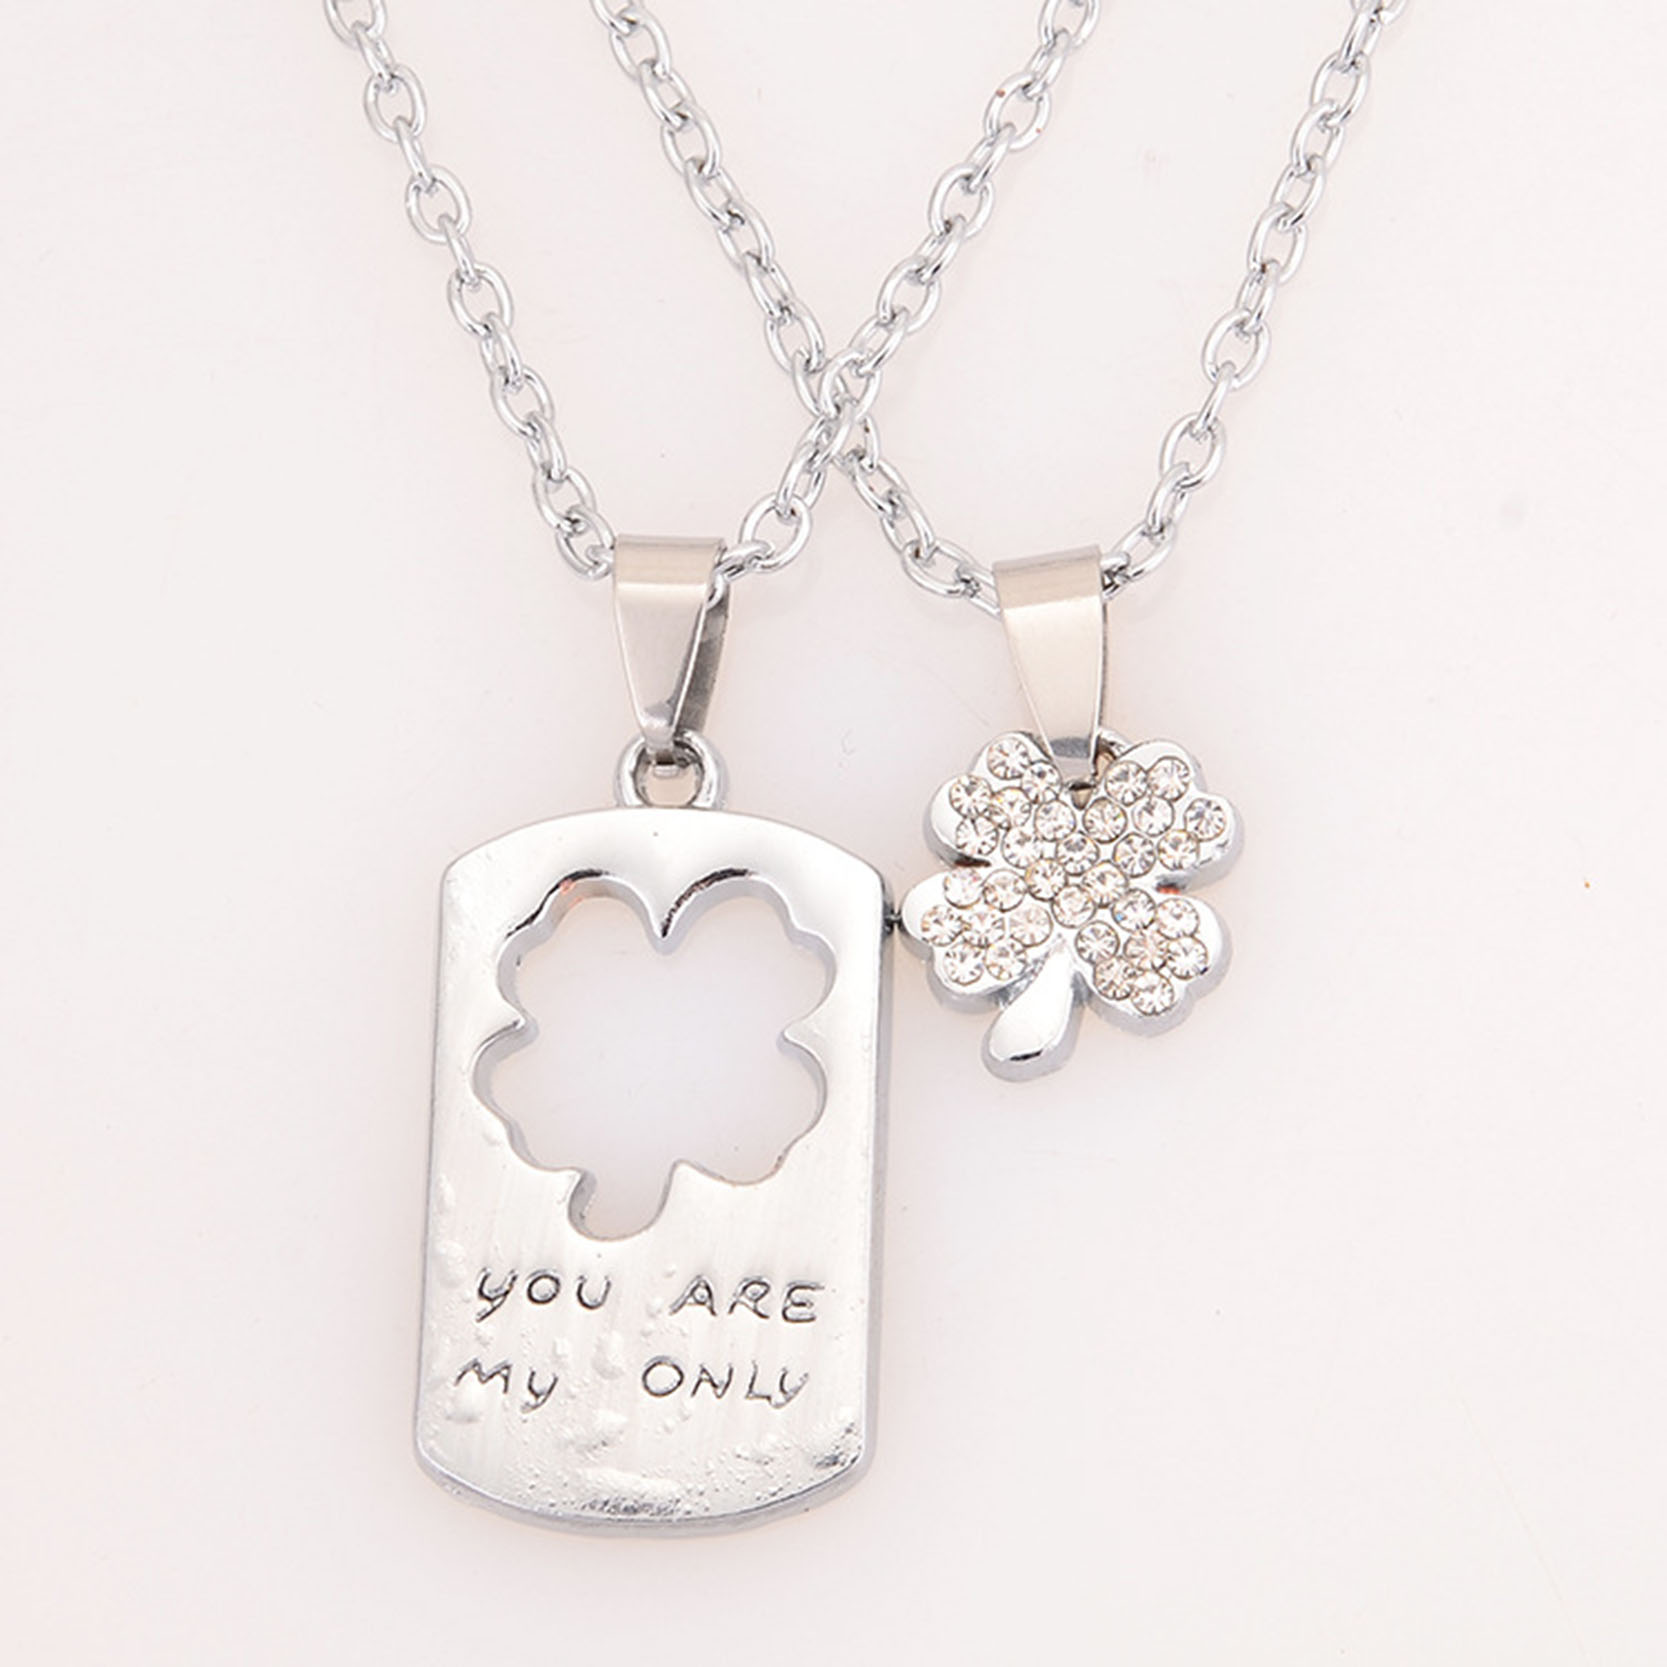 Lucky Clover Pattern Lovers Necklaces Fashion Silver-Plated Chain Pendants Necklaces For Boys Girls Jewelry Collares HOT(China (Mainland))